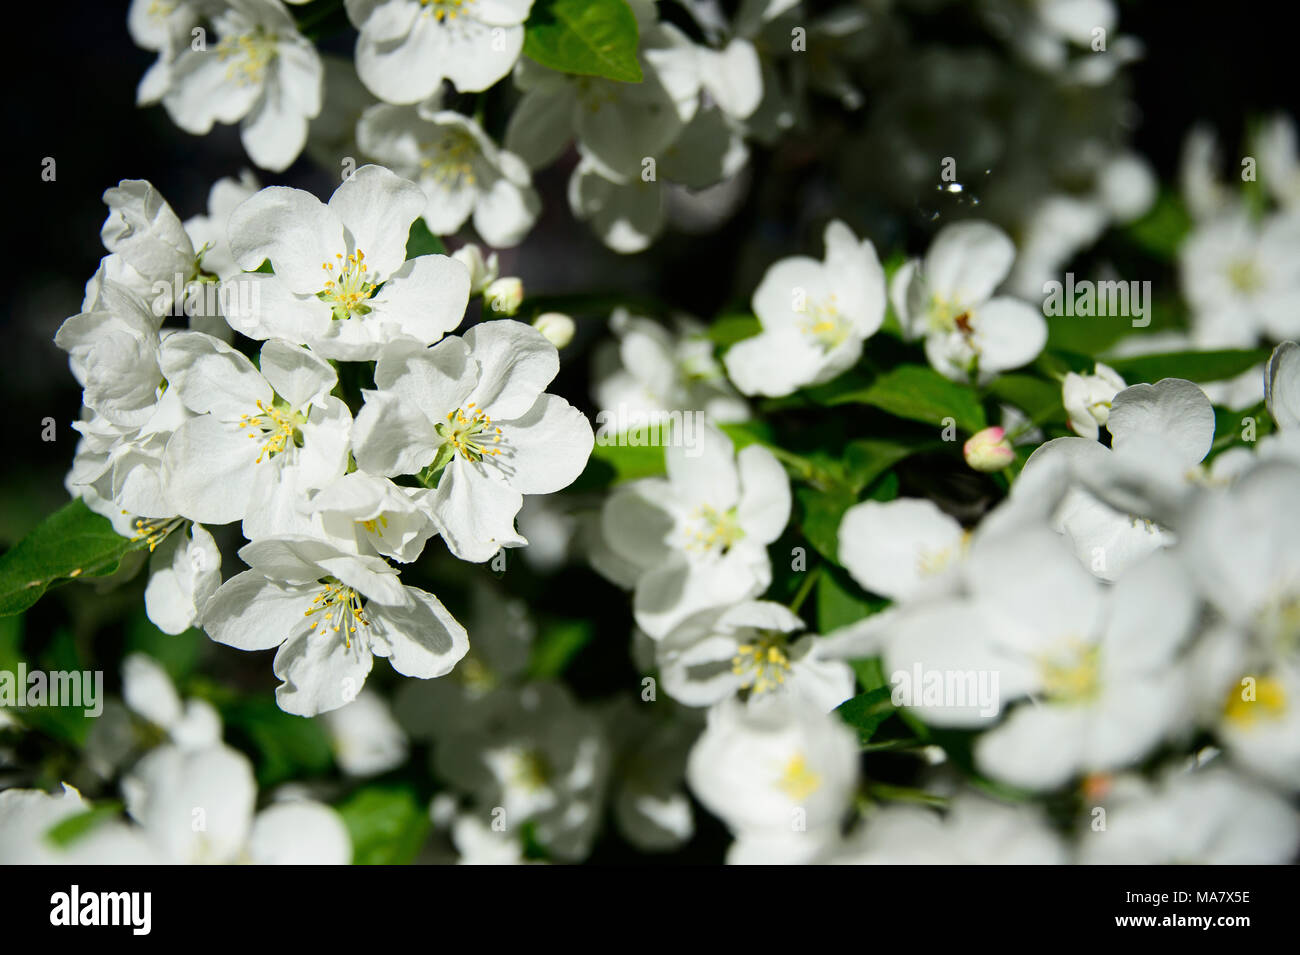 White Flowers Bloom On A Crabapple Tree During Spring At Msgr